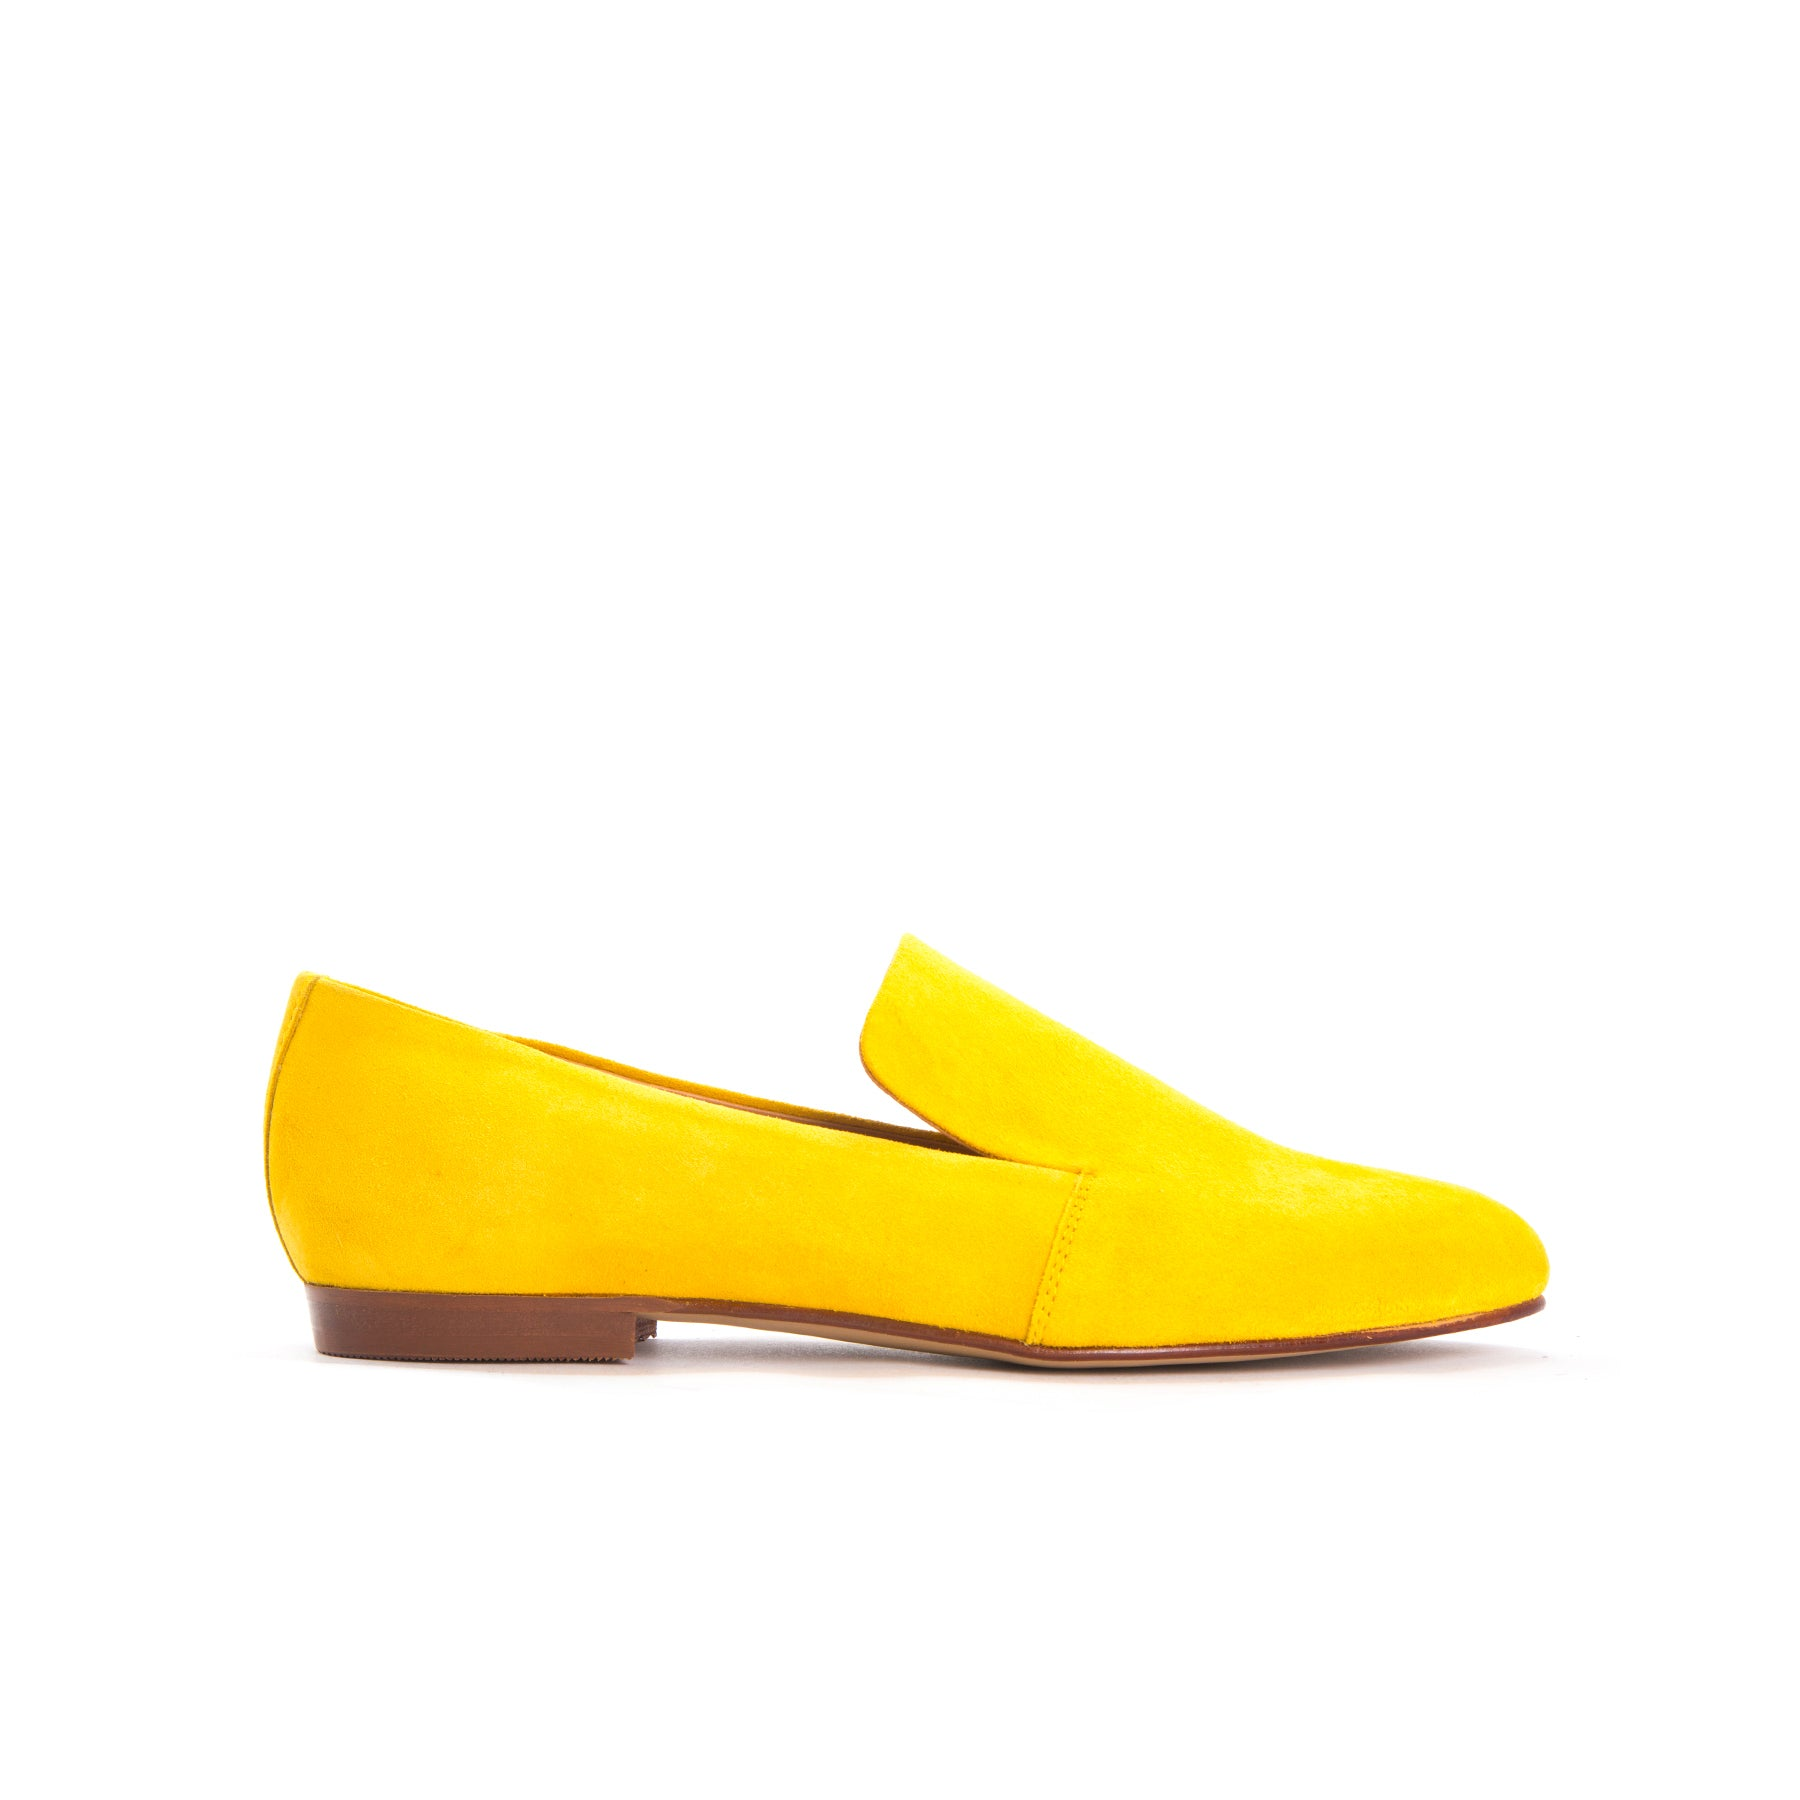 Noritati Yellow Suede